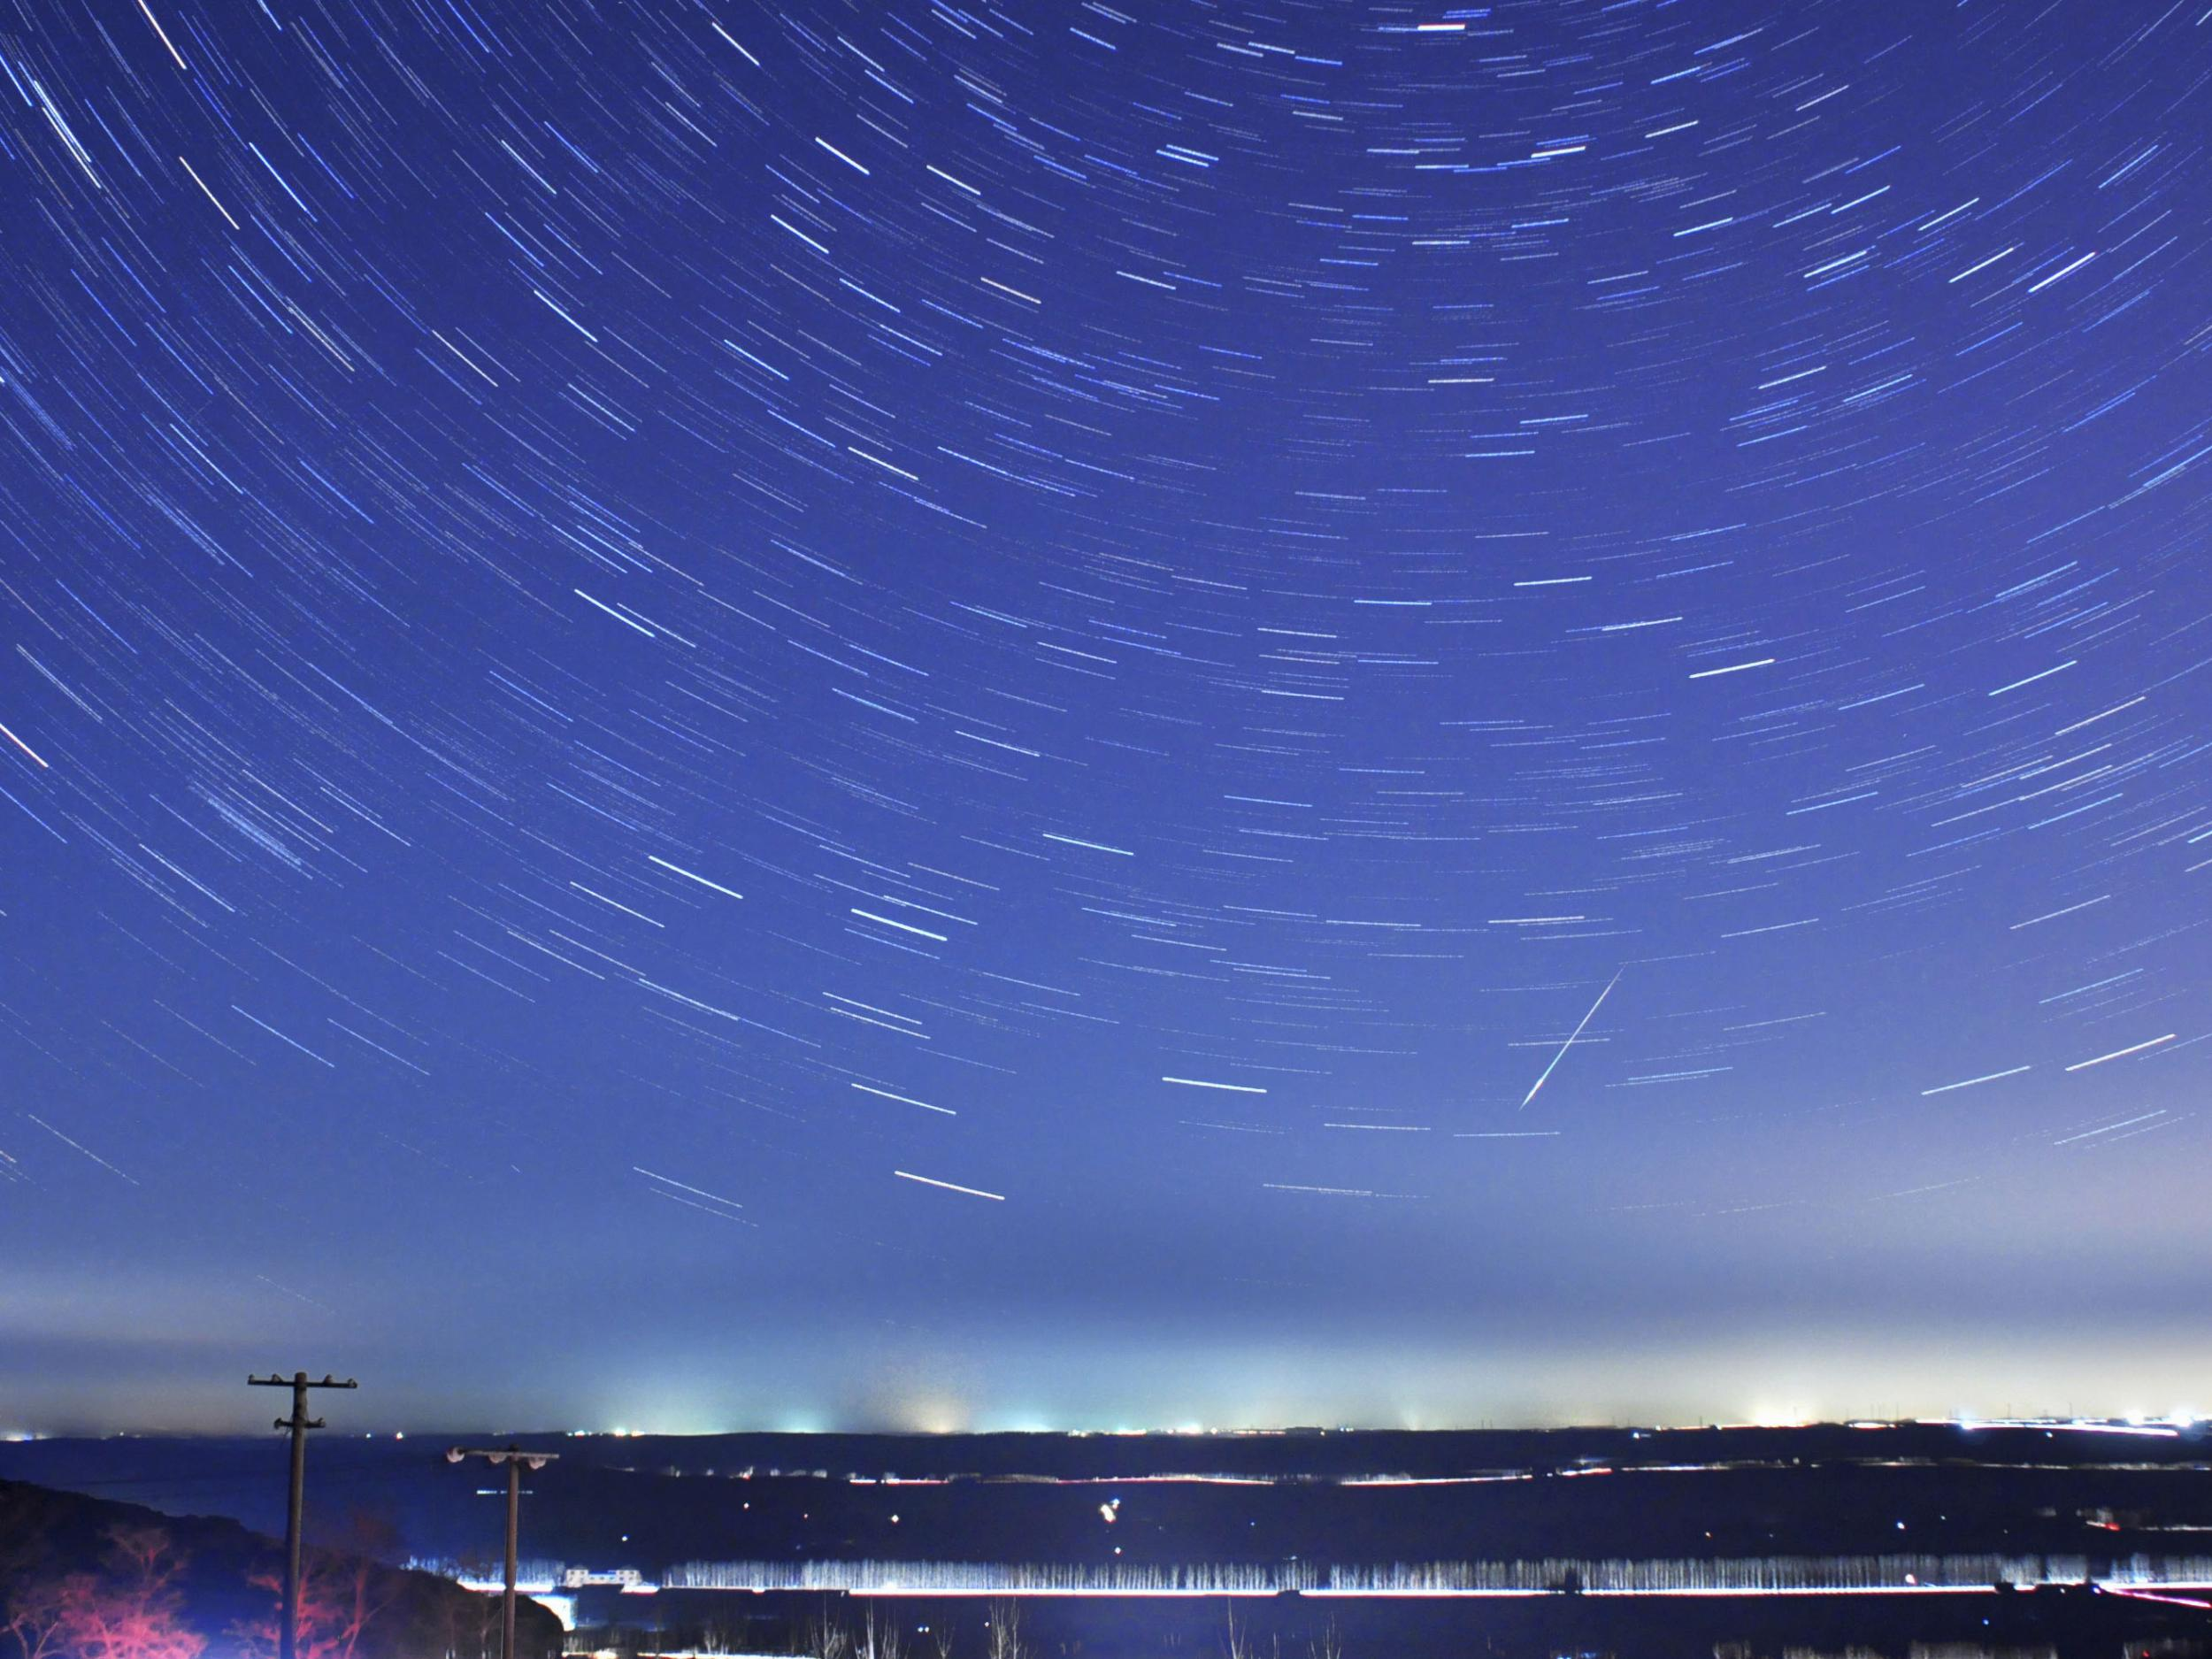 Quadrantids meteor shower tonight will see shooting stars light up the sky